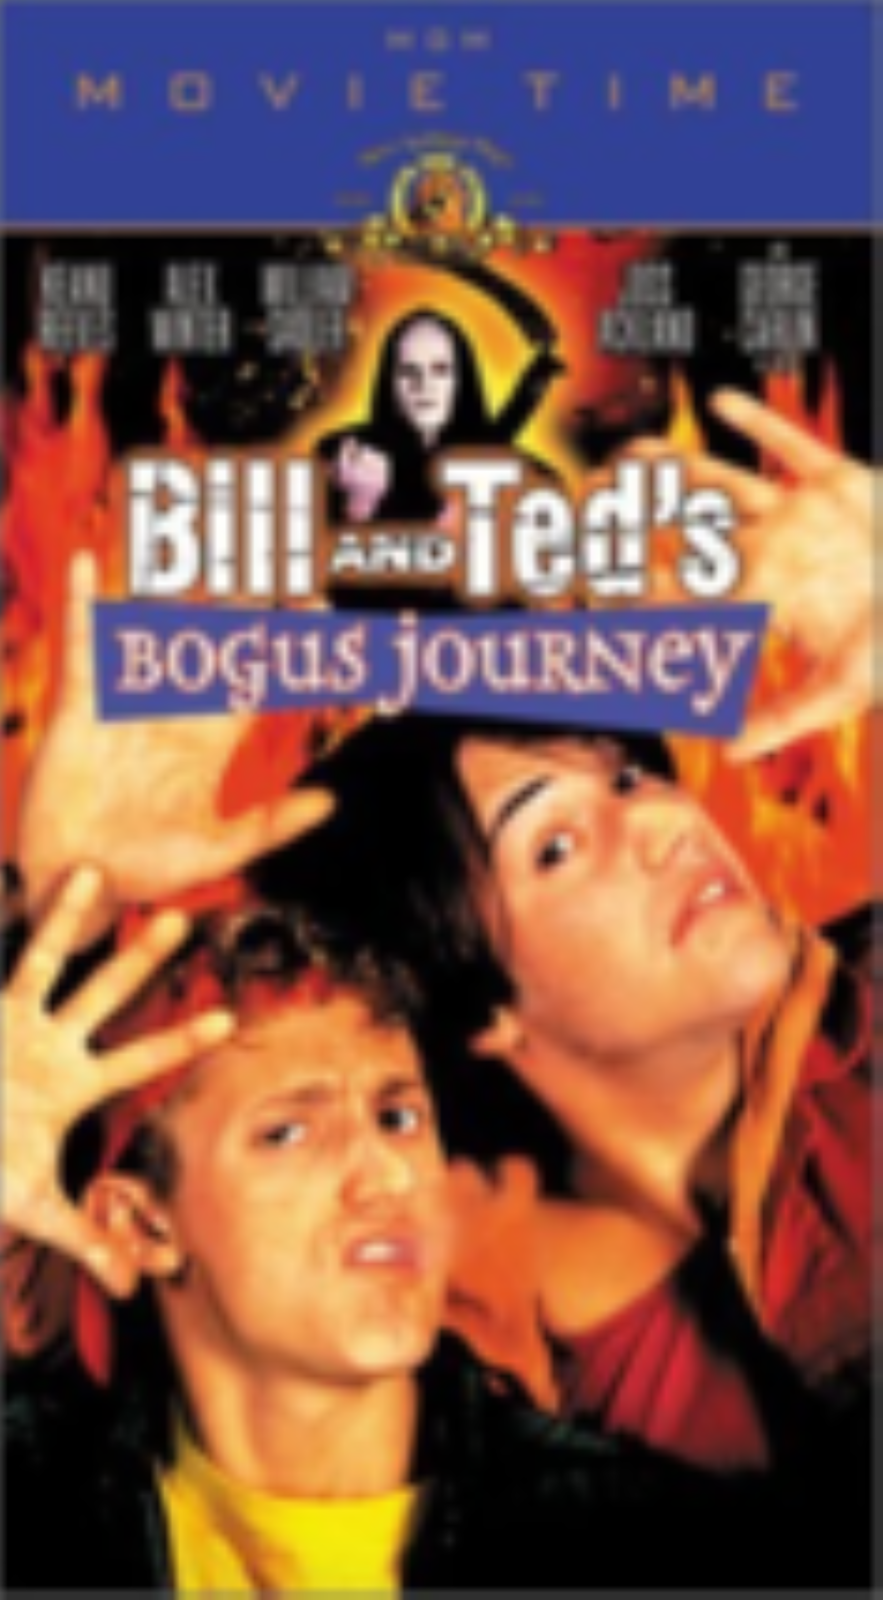 Bill and Ted's Bogus Journey Vhs